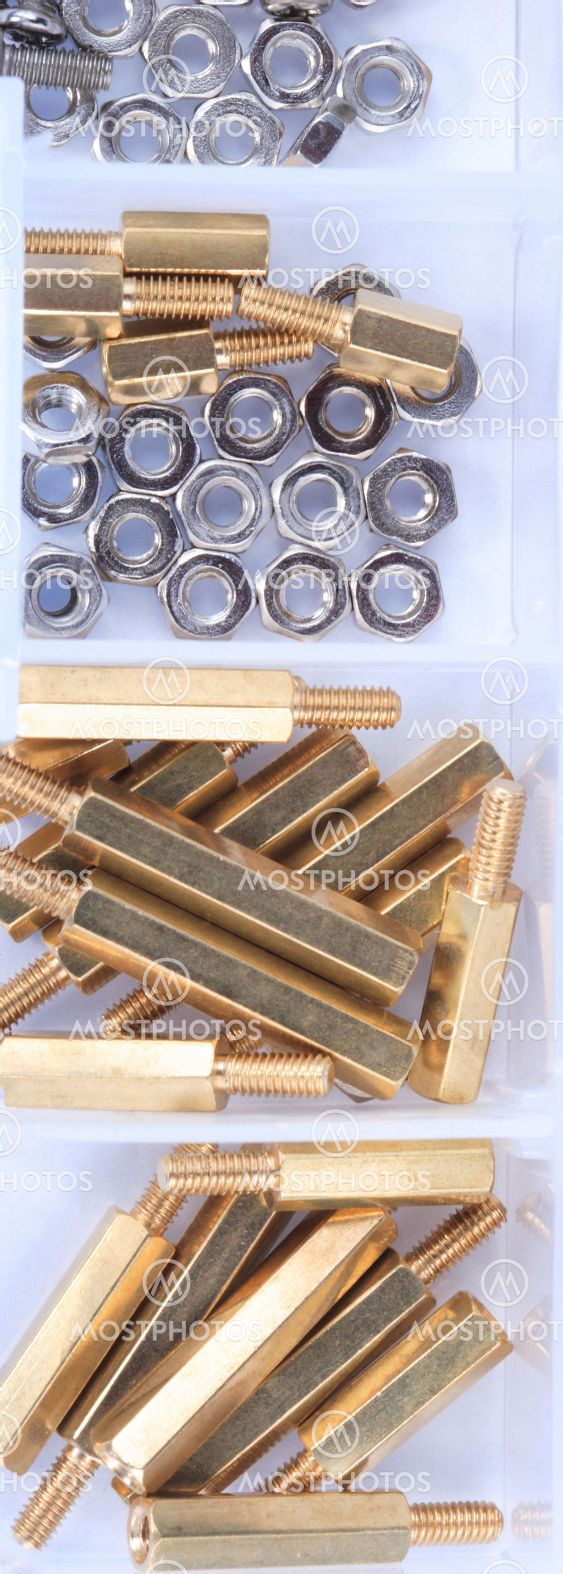 Brass Standoff Spacer Male and Female set in plastic...